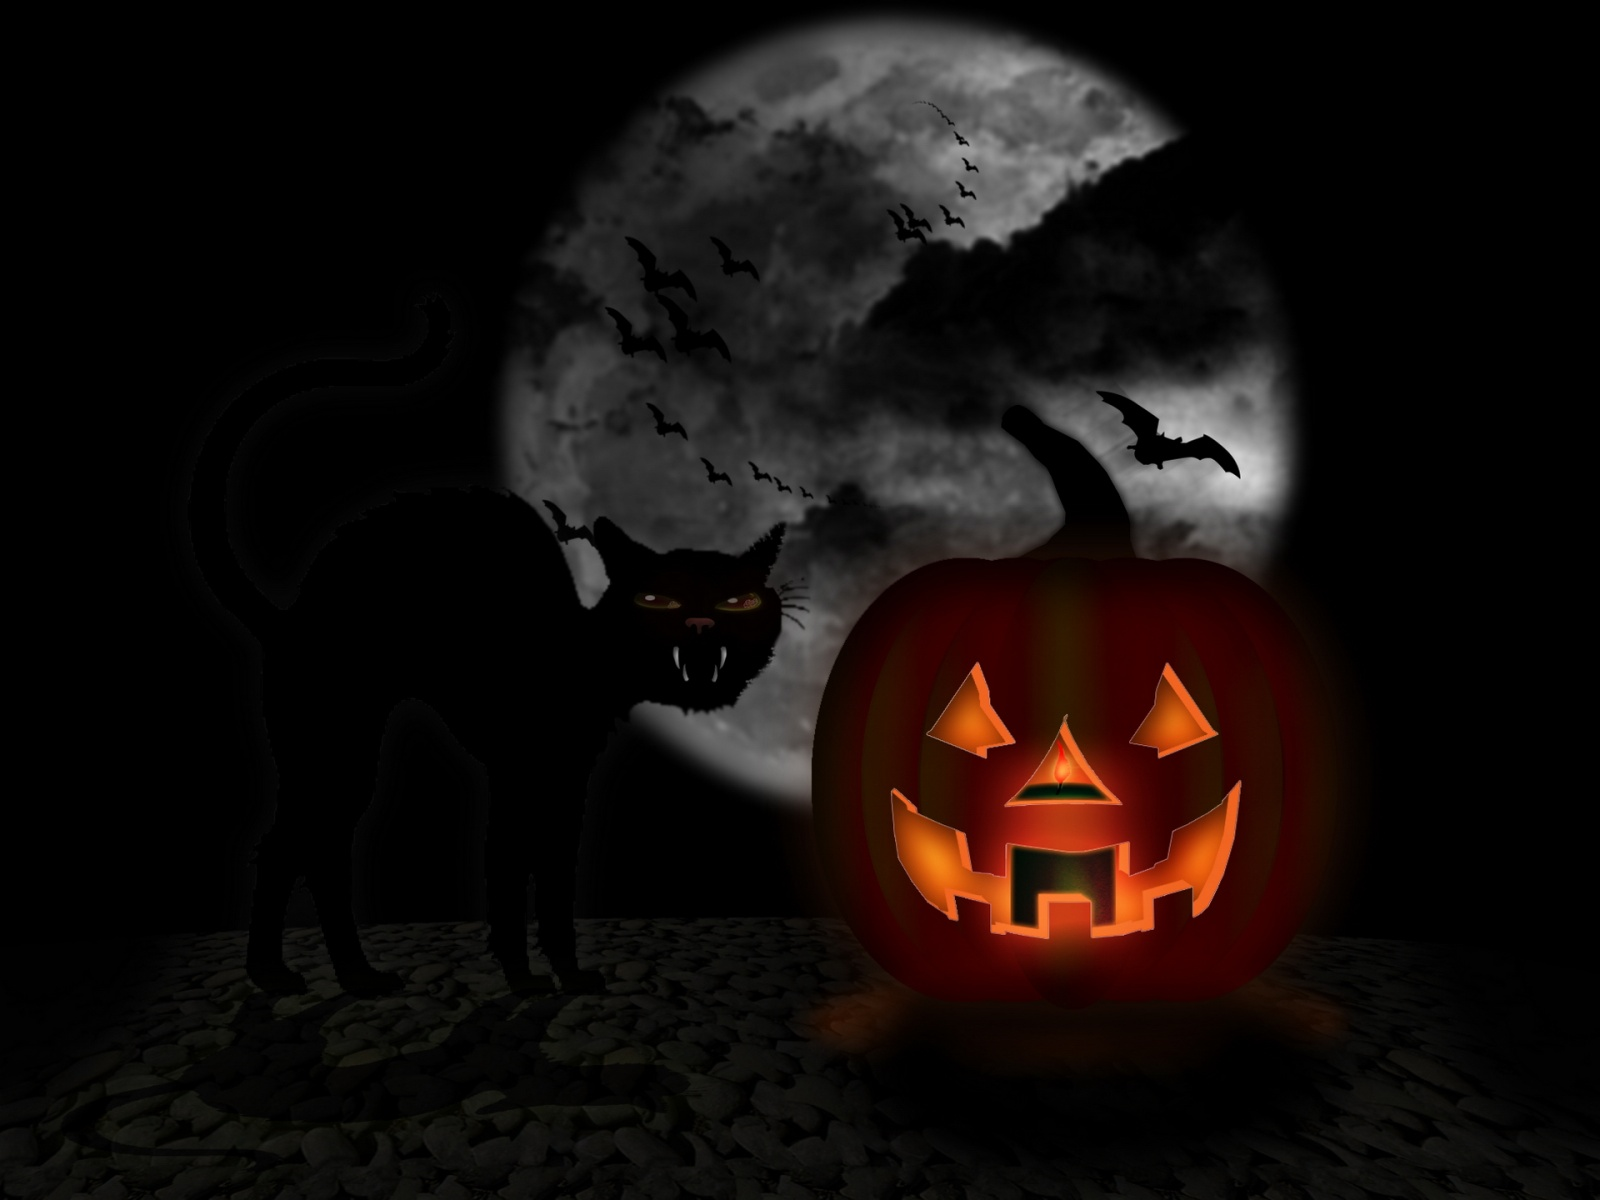 Animated Halloween Wallpaper 3 D 1600x1200